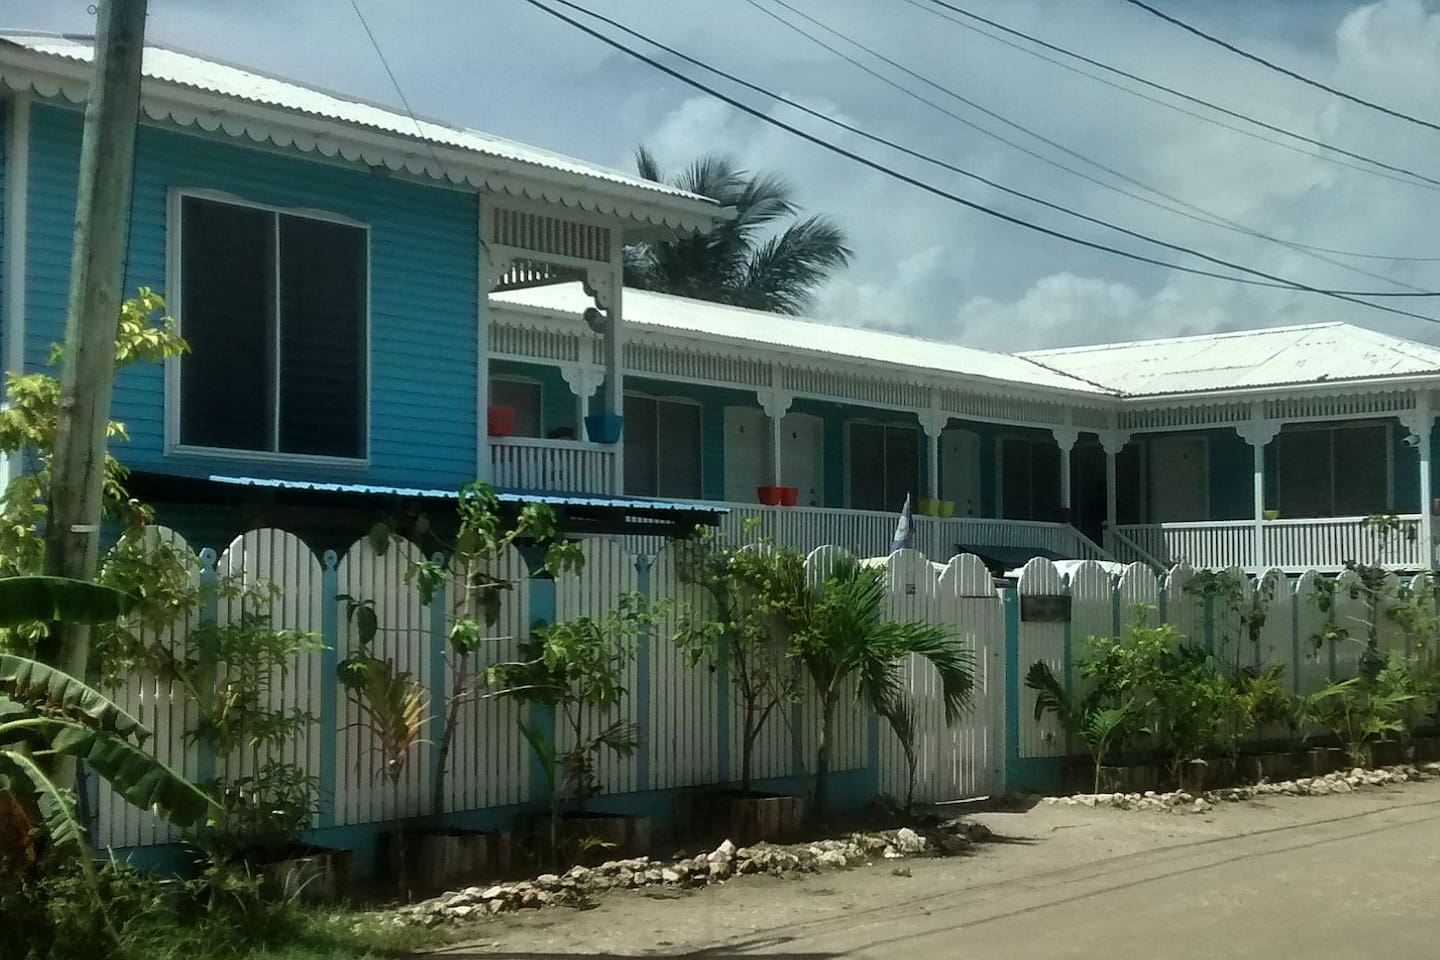 Bakkatown Hostel has Seven single beds with a Lounge, shared bathroom and shower.  Your own single bed with locker and lock, fan, dimmable light and outlets at your night stand make an economical home for your adventures in San Pedro.